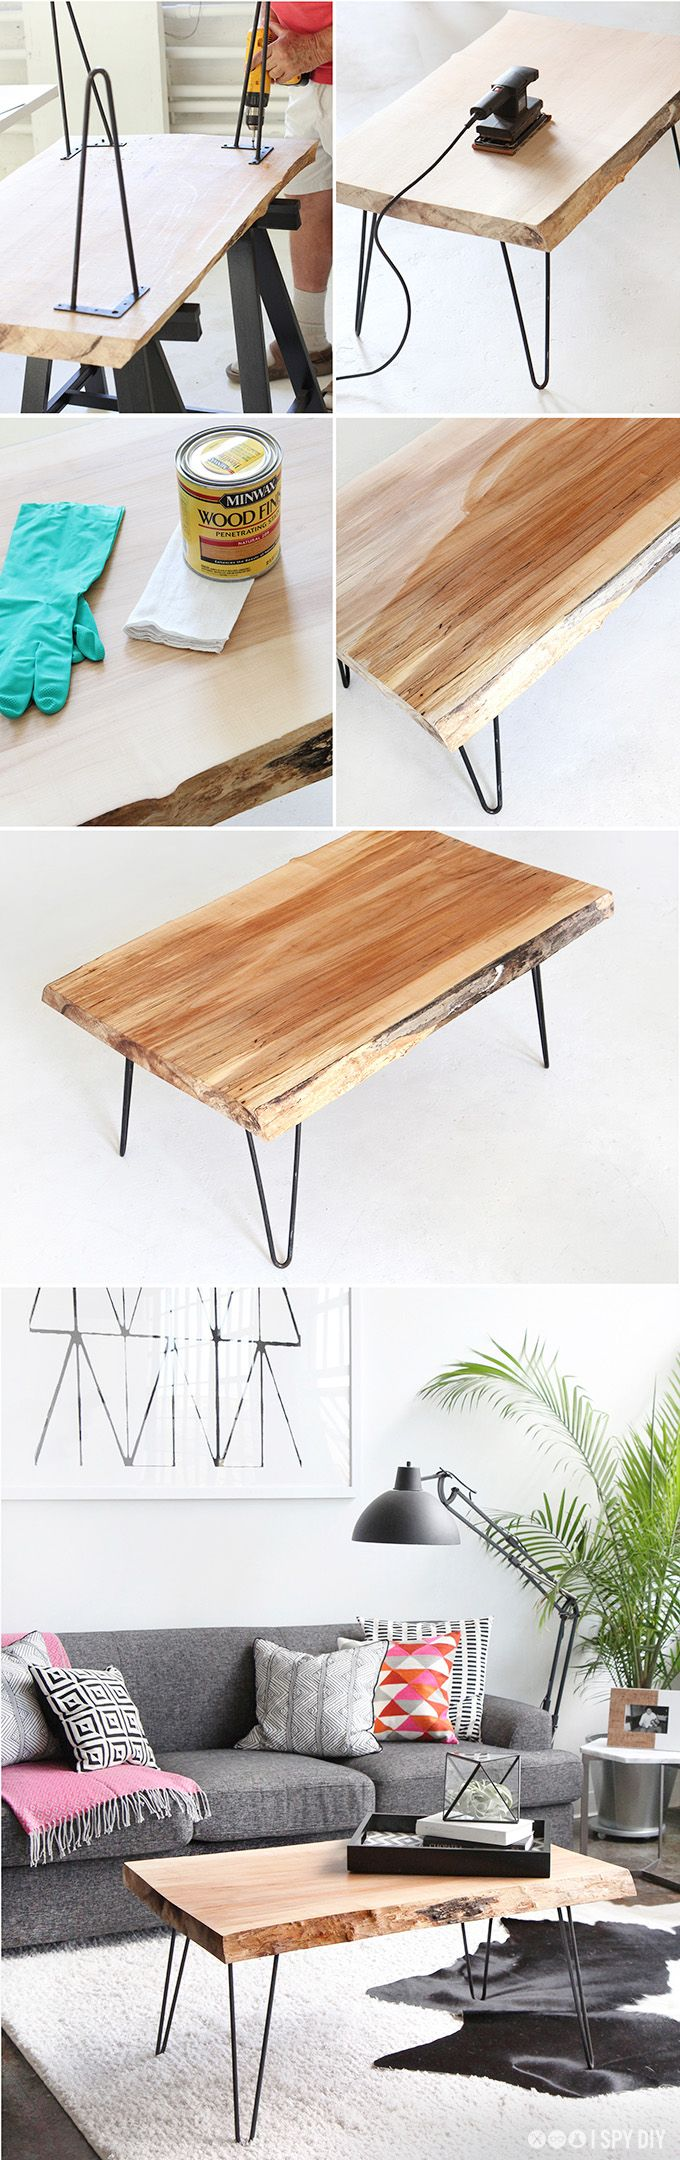 Ispydiy woodslabtable steps homes and ideas pinterest for Minimalistische wohnungseinrichtung